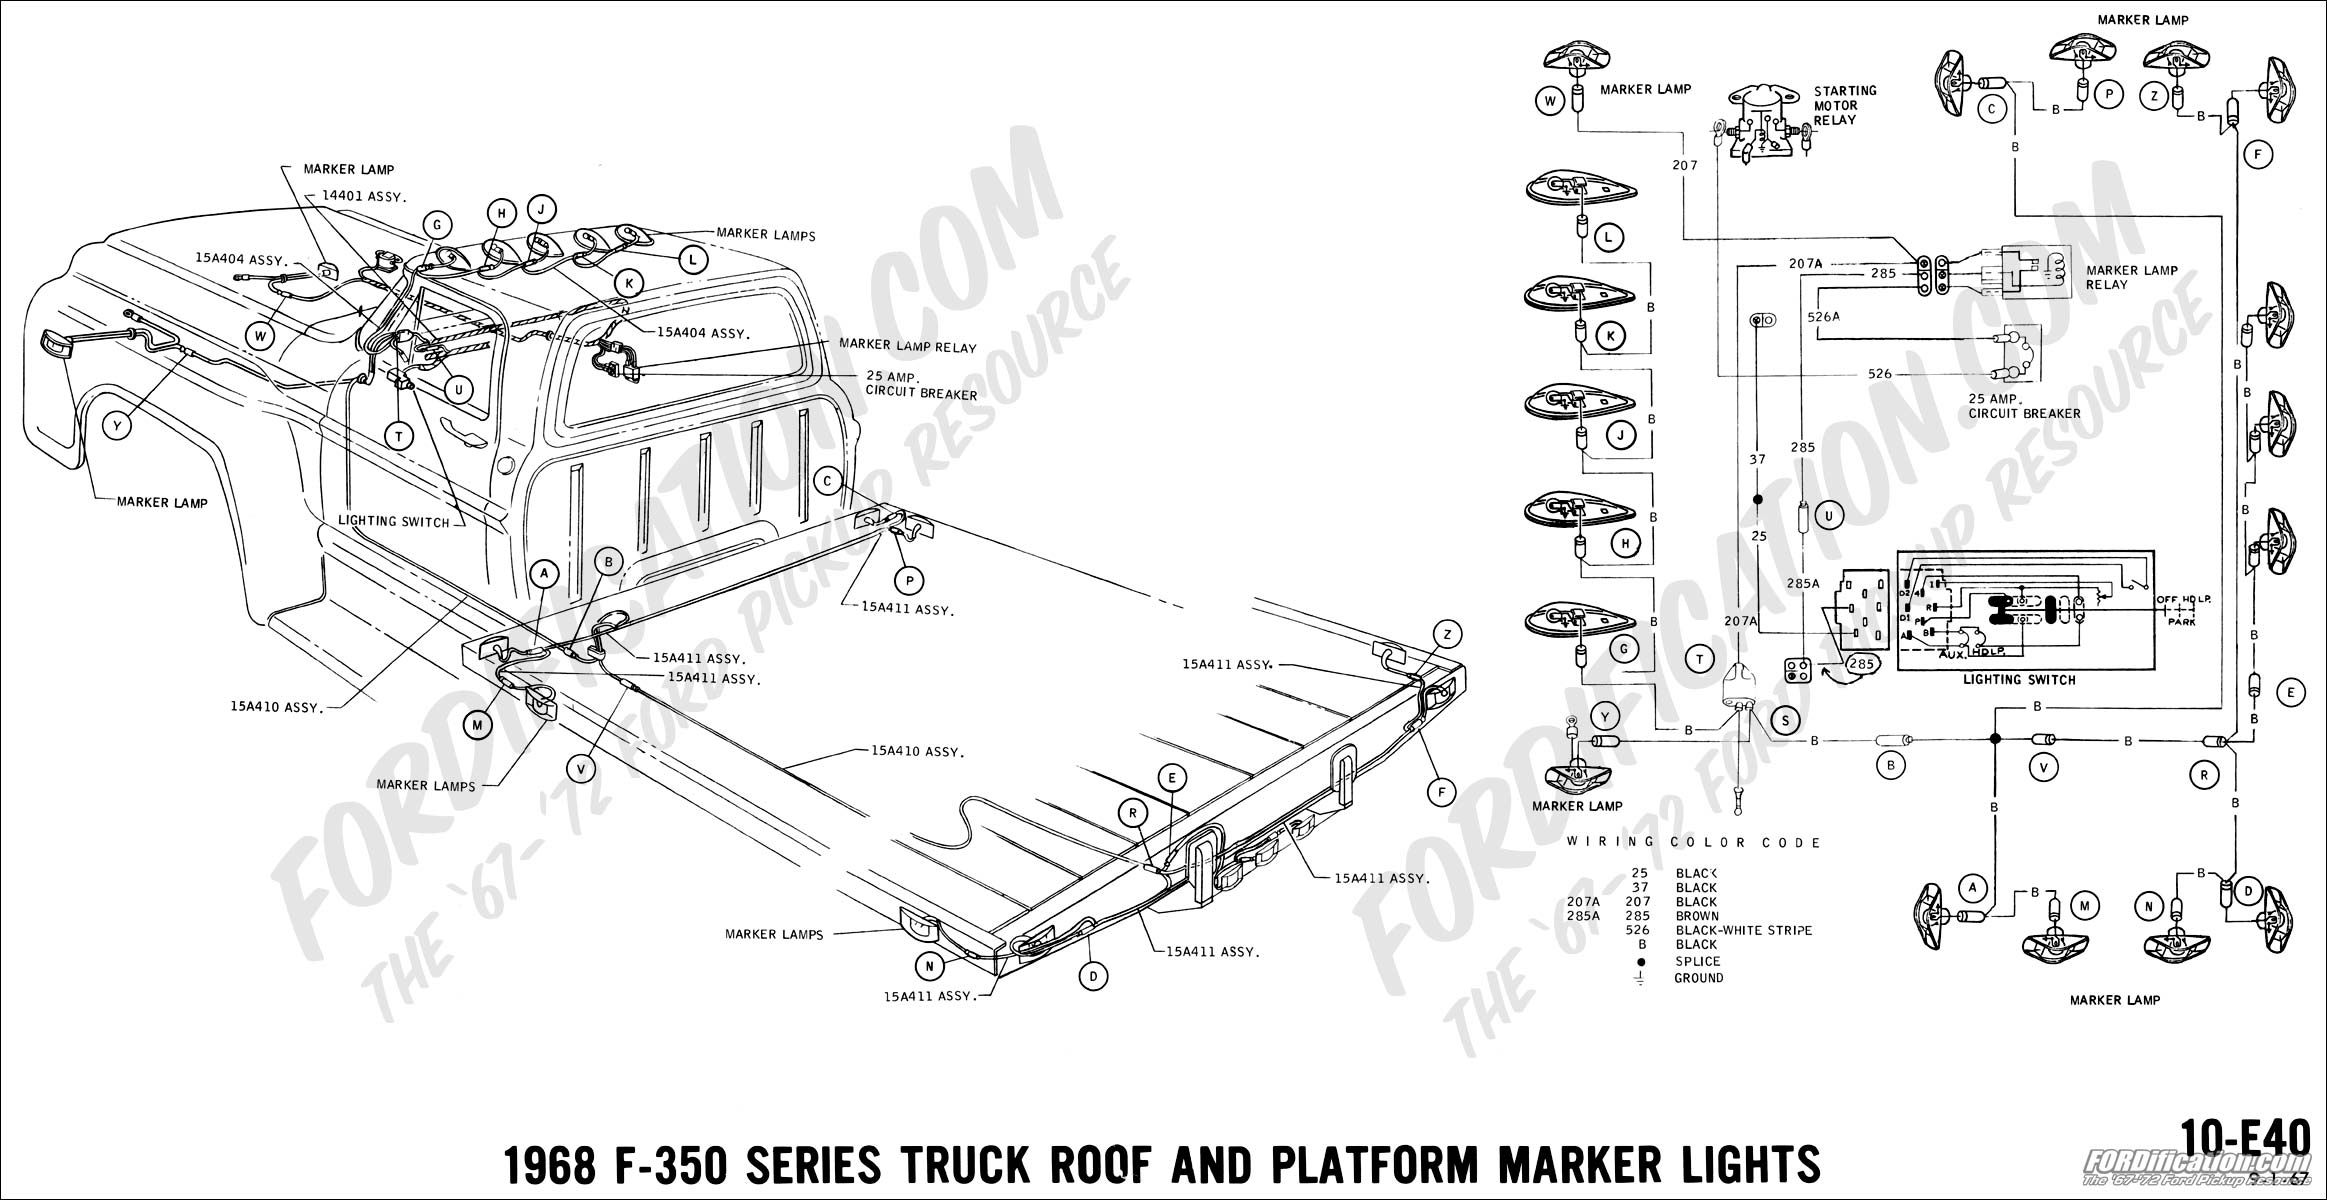 68 42 cab light wiring diagram e36 dome light wiring diagram \u2022 indy500 co  at edmiracle.co